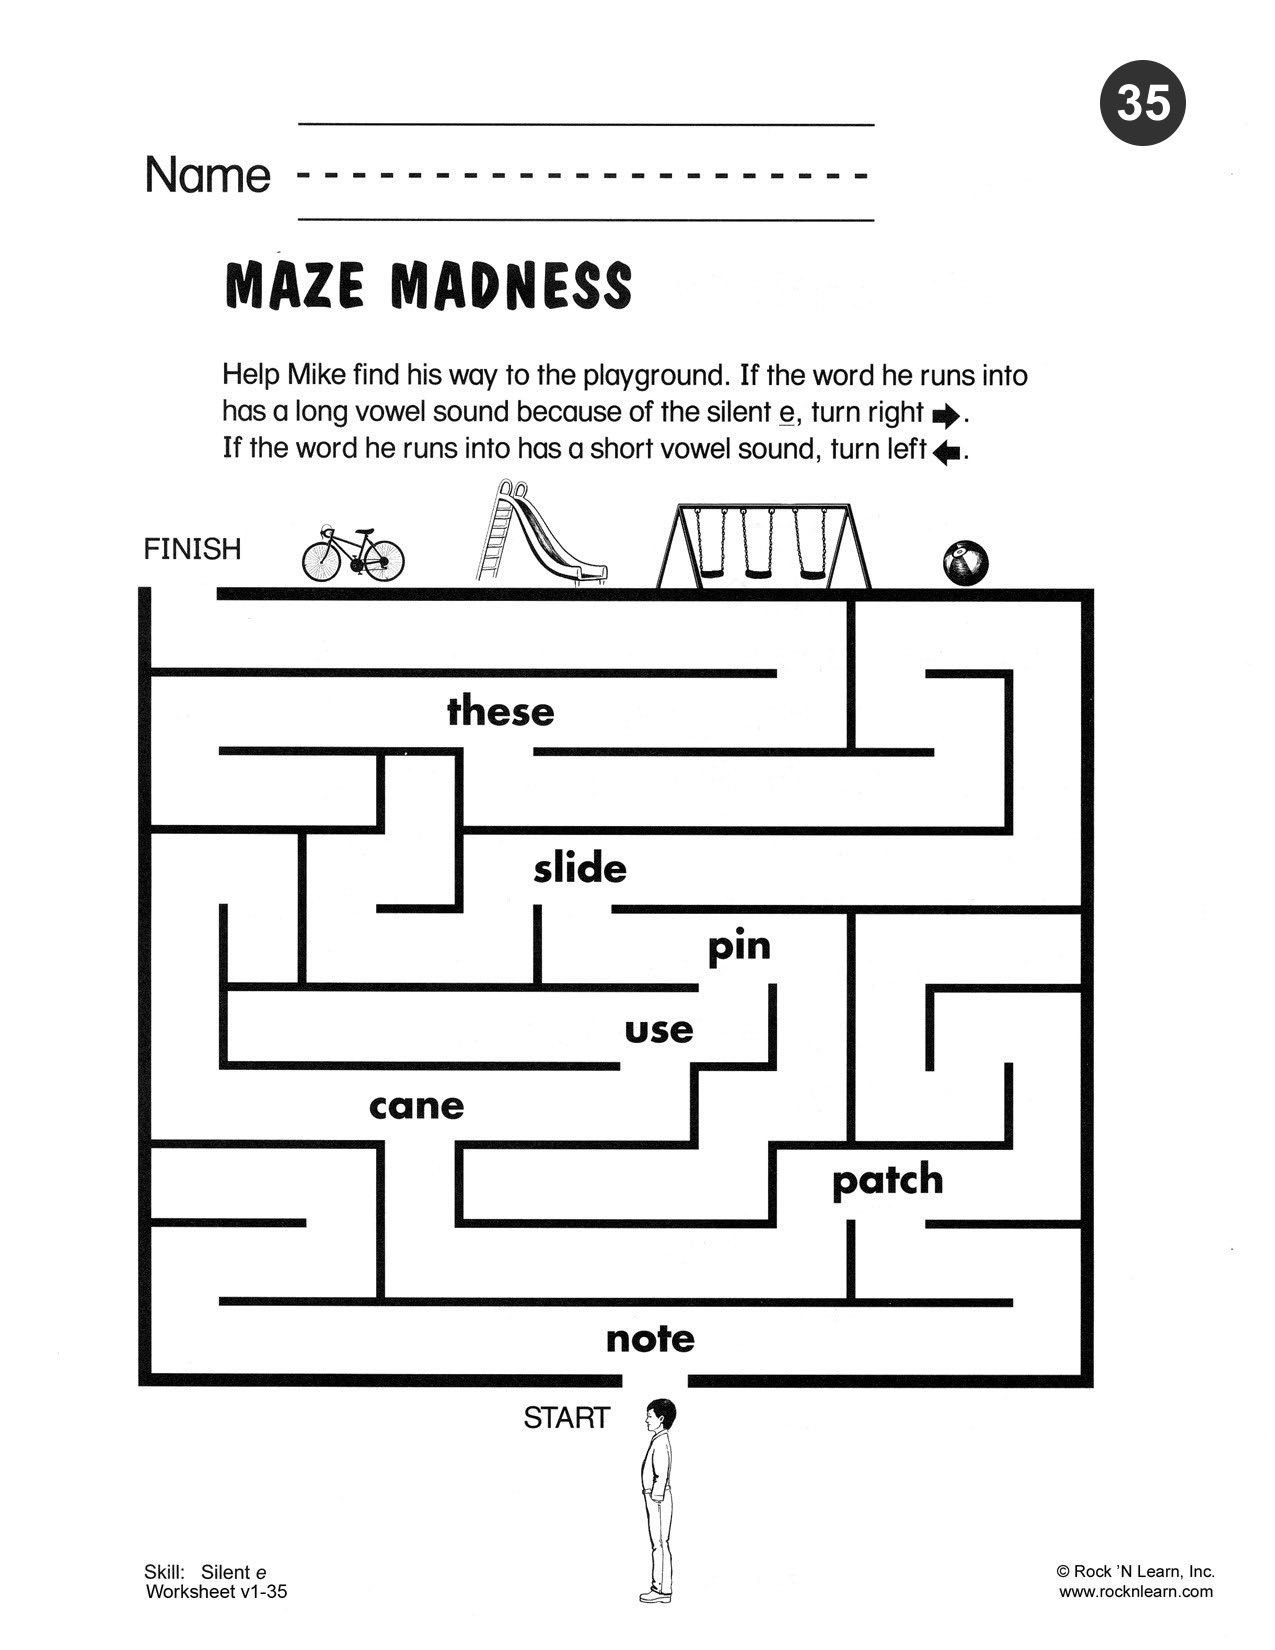 Silent E Worksheets 2nd Grade Help Mike Find His Way to the Playground if the Word He